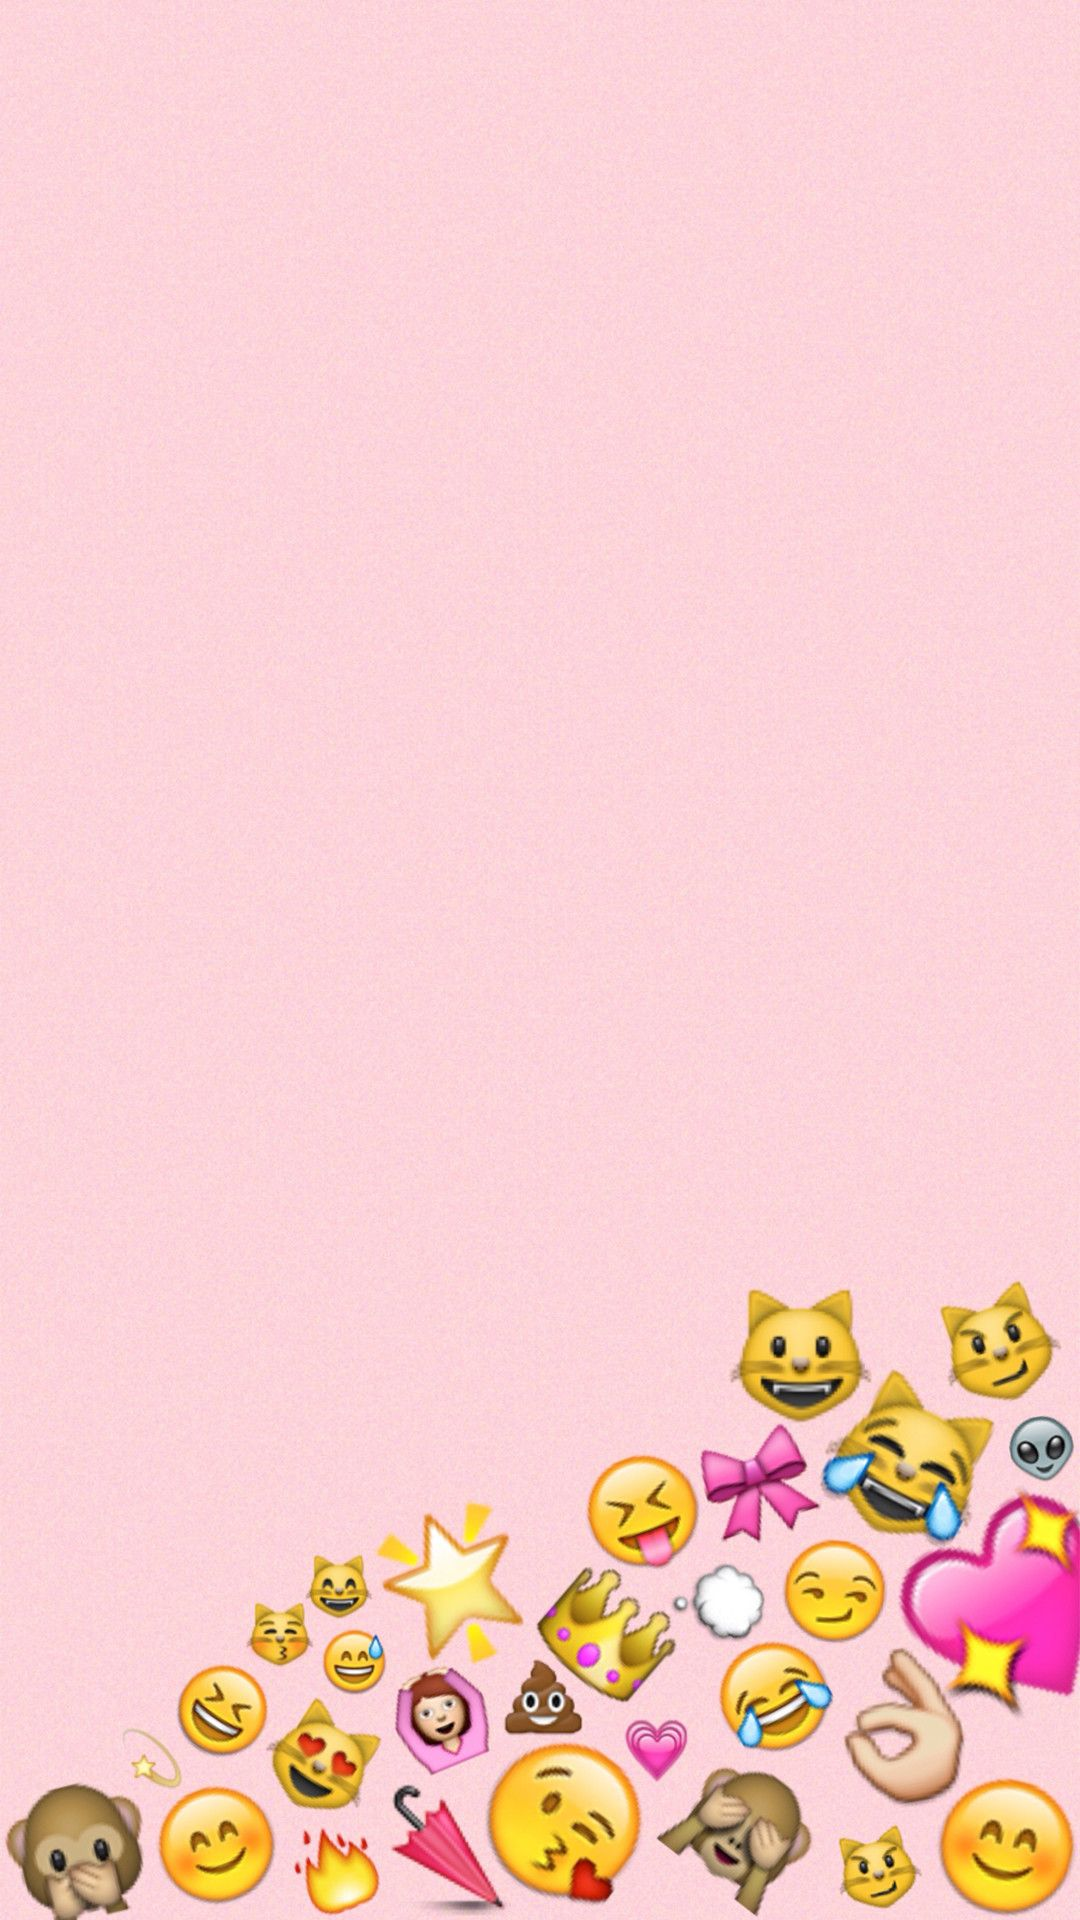 free download Super Girly Wallpapers 1080x1920 ios Emoji